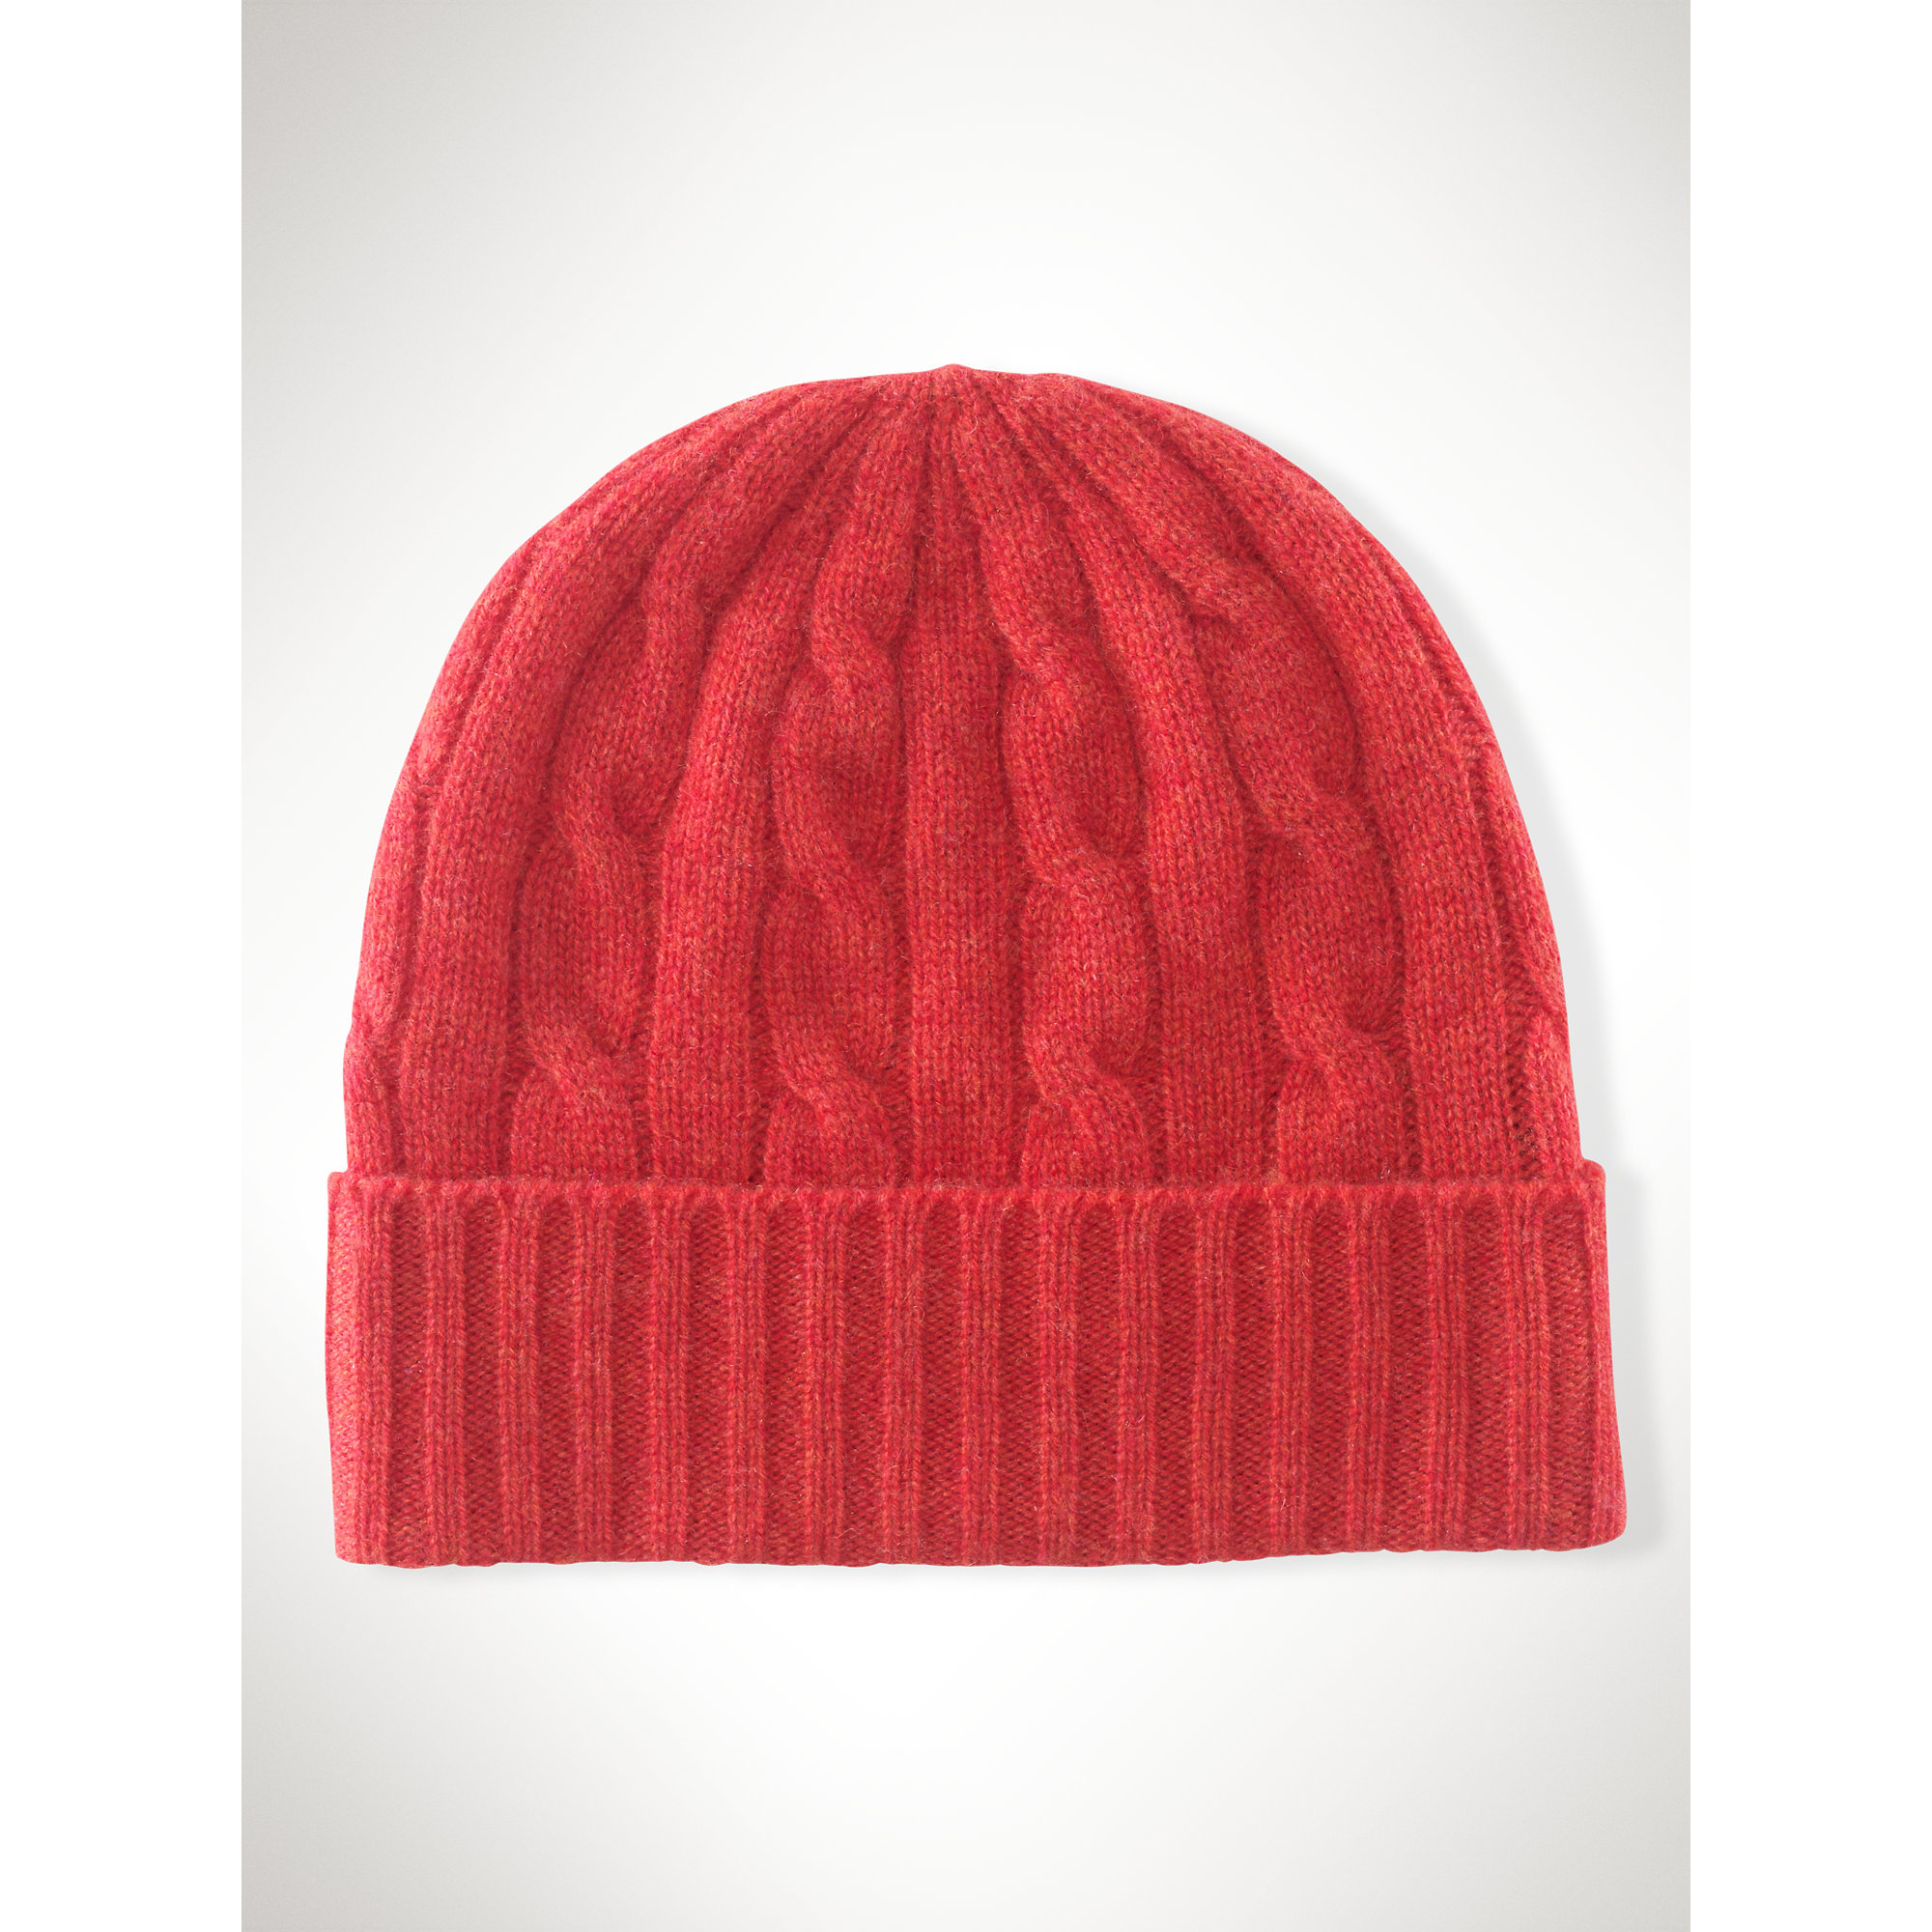 Lyst - Polo Ralph Lauren Cable-knit Cashmere Hat in Red 2bd4562aa9e